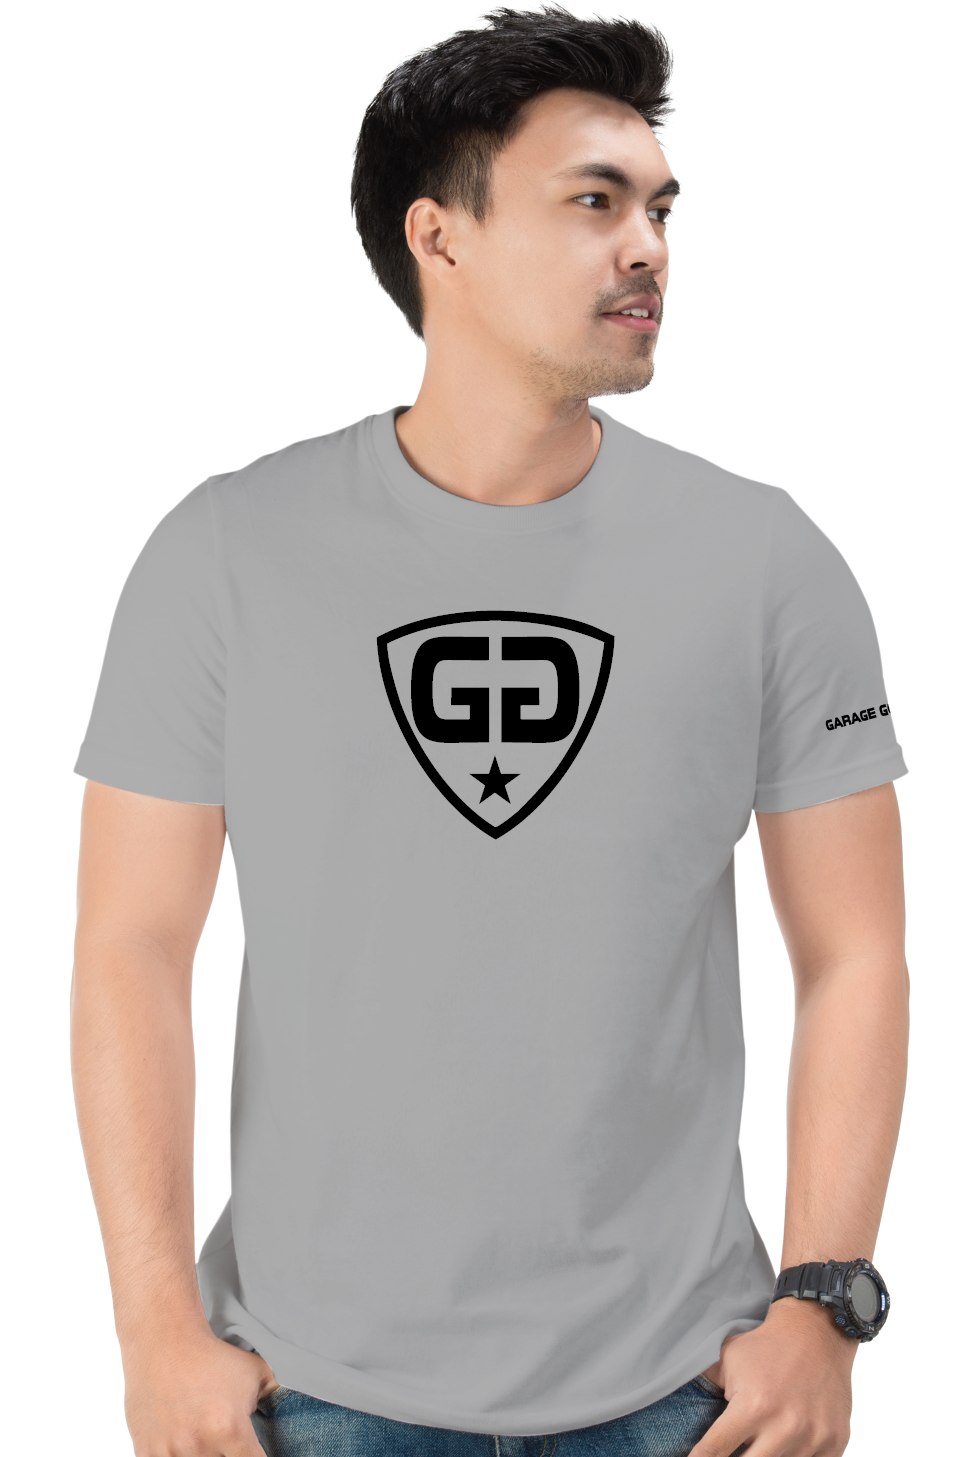 gg center shield gray